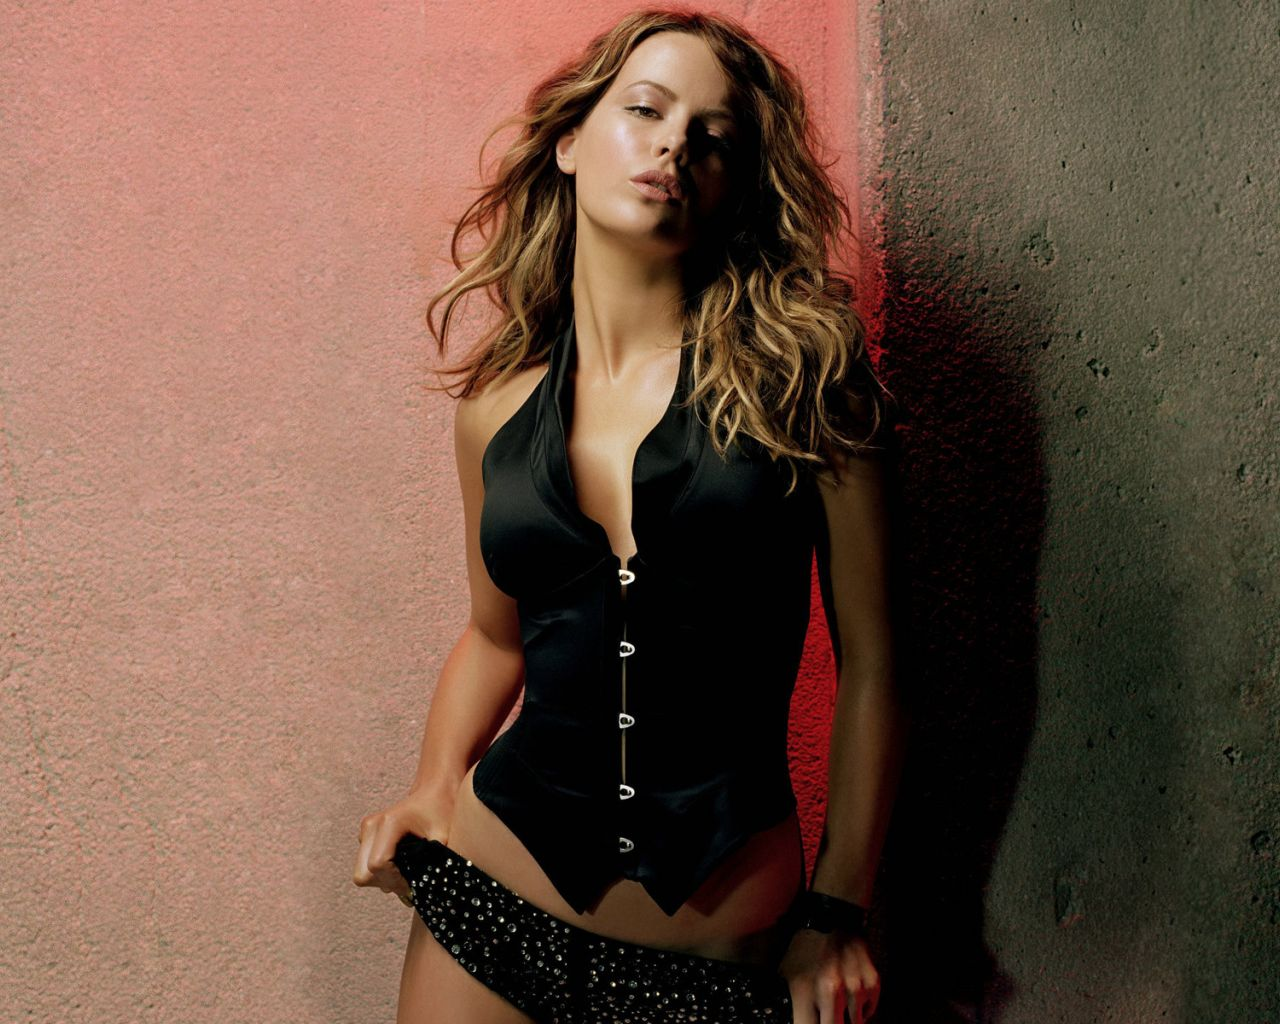 http://3.bp.blogspot.com/-dFFe40982h0/TeyV8Hw2dPI/AAAAAAAABPk/YUbsXdhletU/s1600/kate-beckinsale-wallpaper-hq.jpg